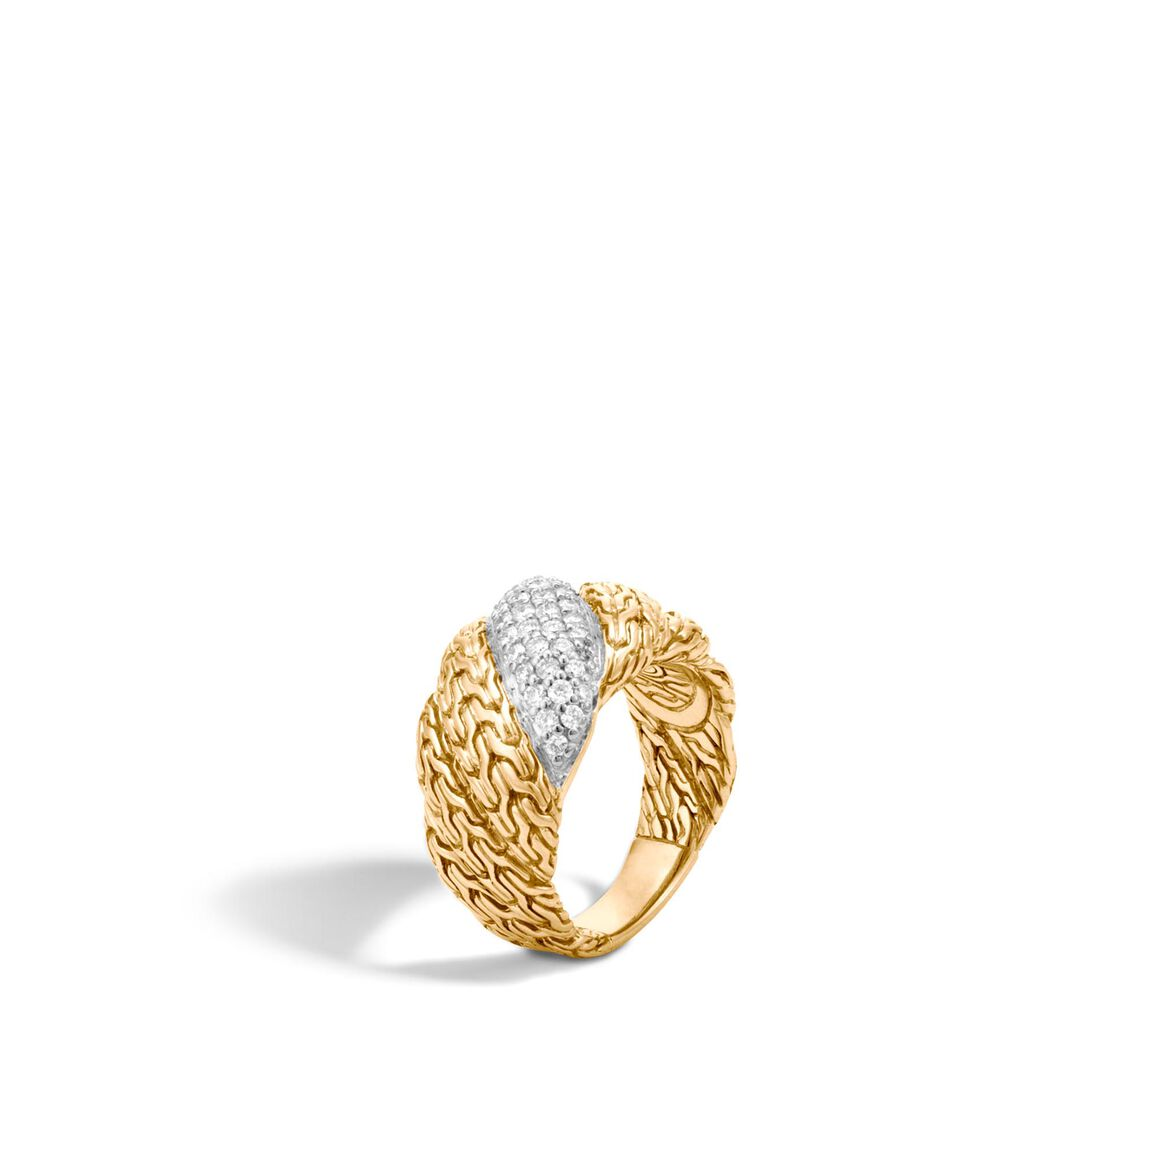 Twisted Chain 12.5MM Band Ring in 18K Gold with Diamonds